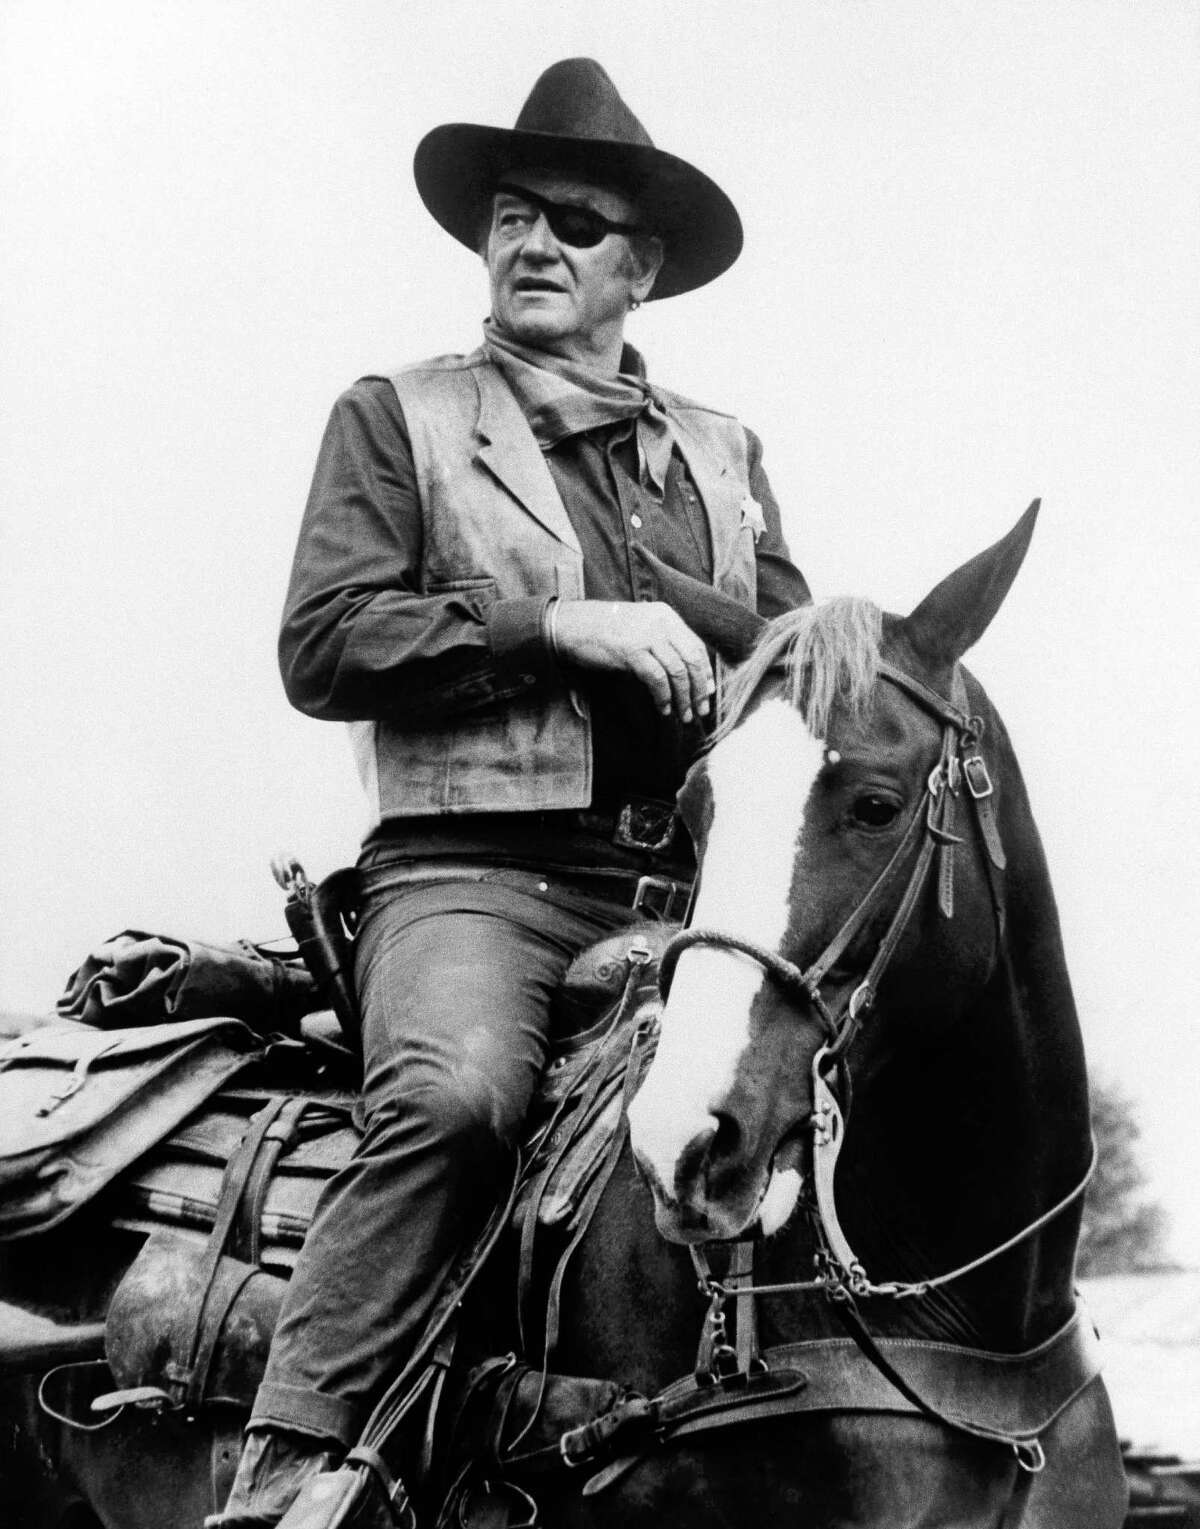 John Wayne was once a big deal in advertising, but many brands today sway us with friends and family.